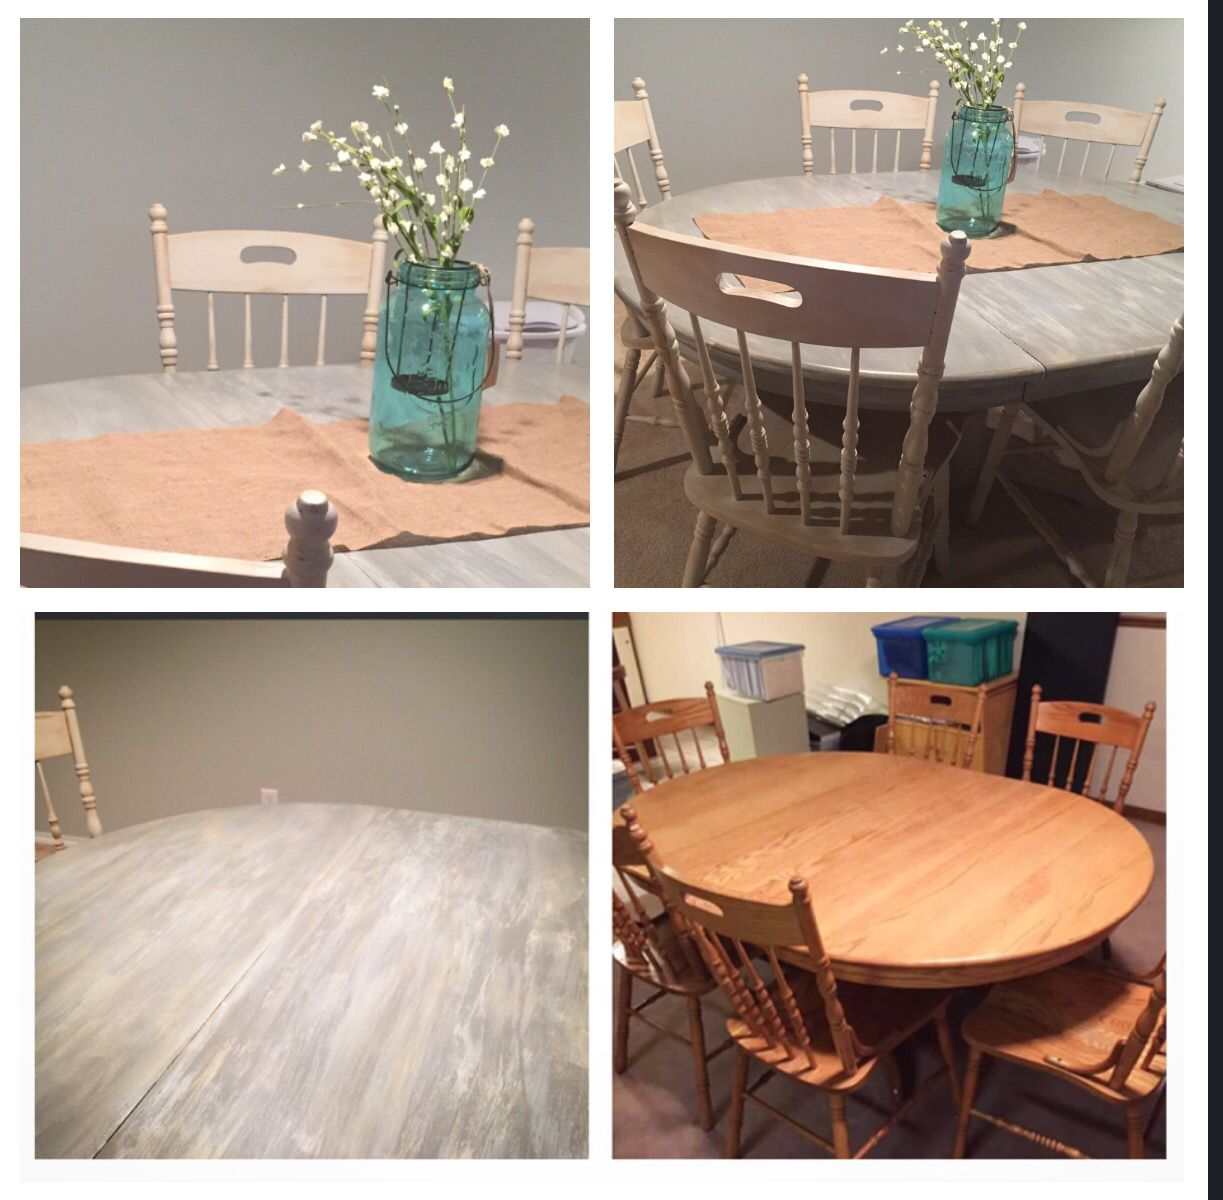 75.00 solid oak table with 6 chairs makeover layered dark grey, blue and grey beige wash lots of buffing .. This took forever and the chairs are just the grey beige with dark wax (I dread painting anything with spindles .. We have done spray paint and I recommend that so much easier)